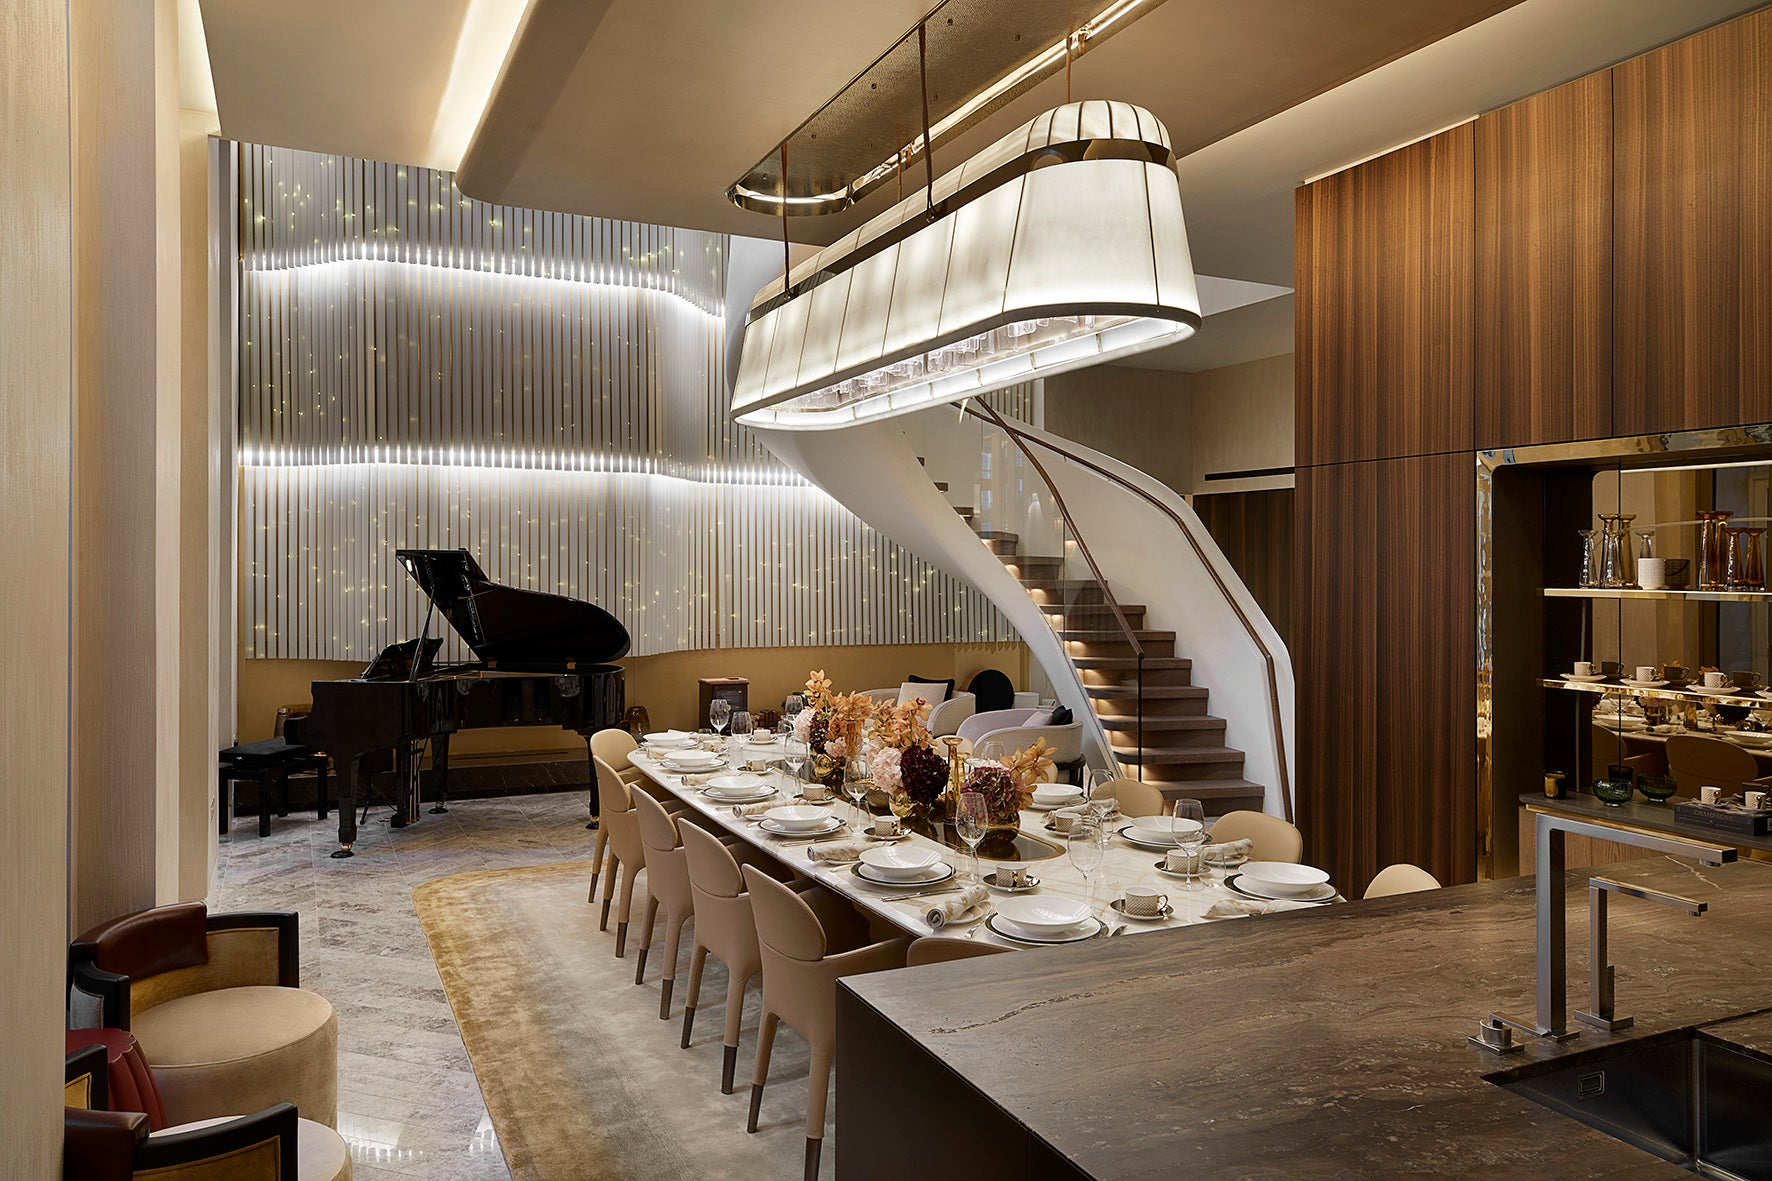 Clivedale launches the first townhouse at the Mayfair Park Residences, part of the Dorchester Collection